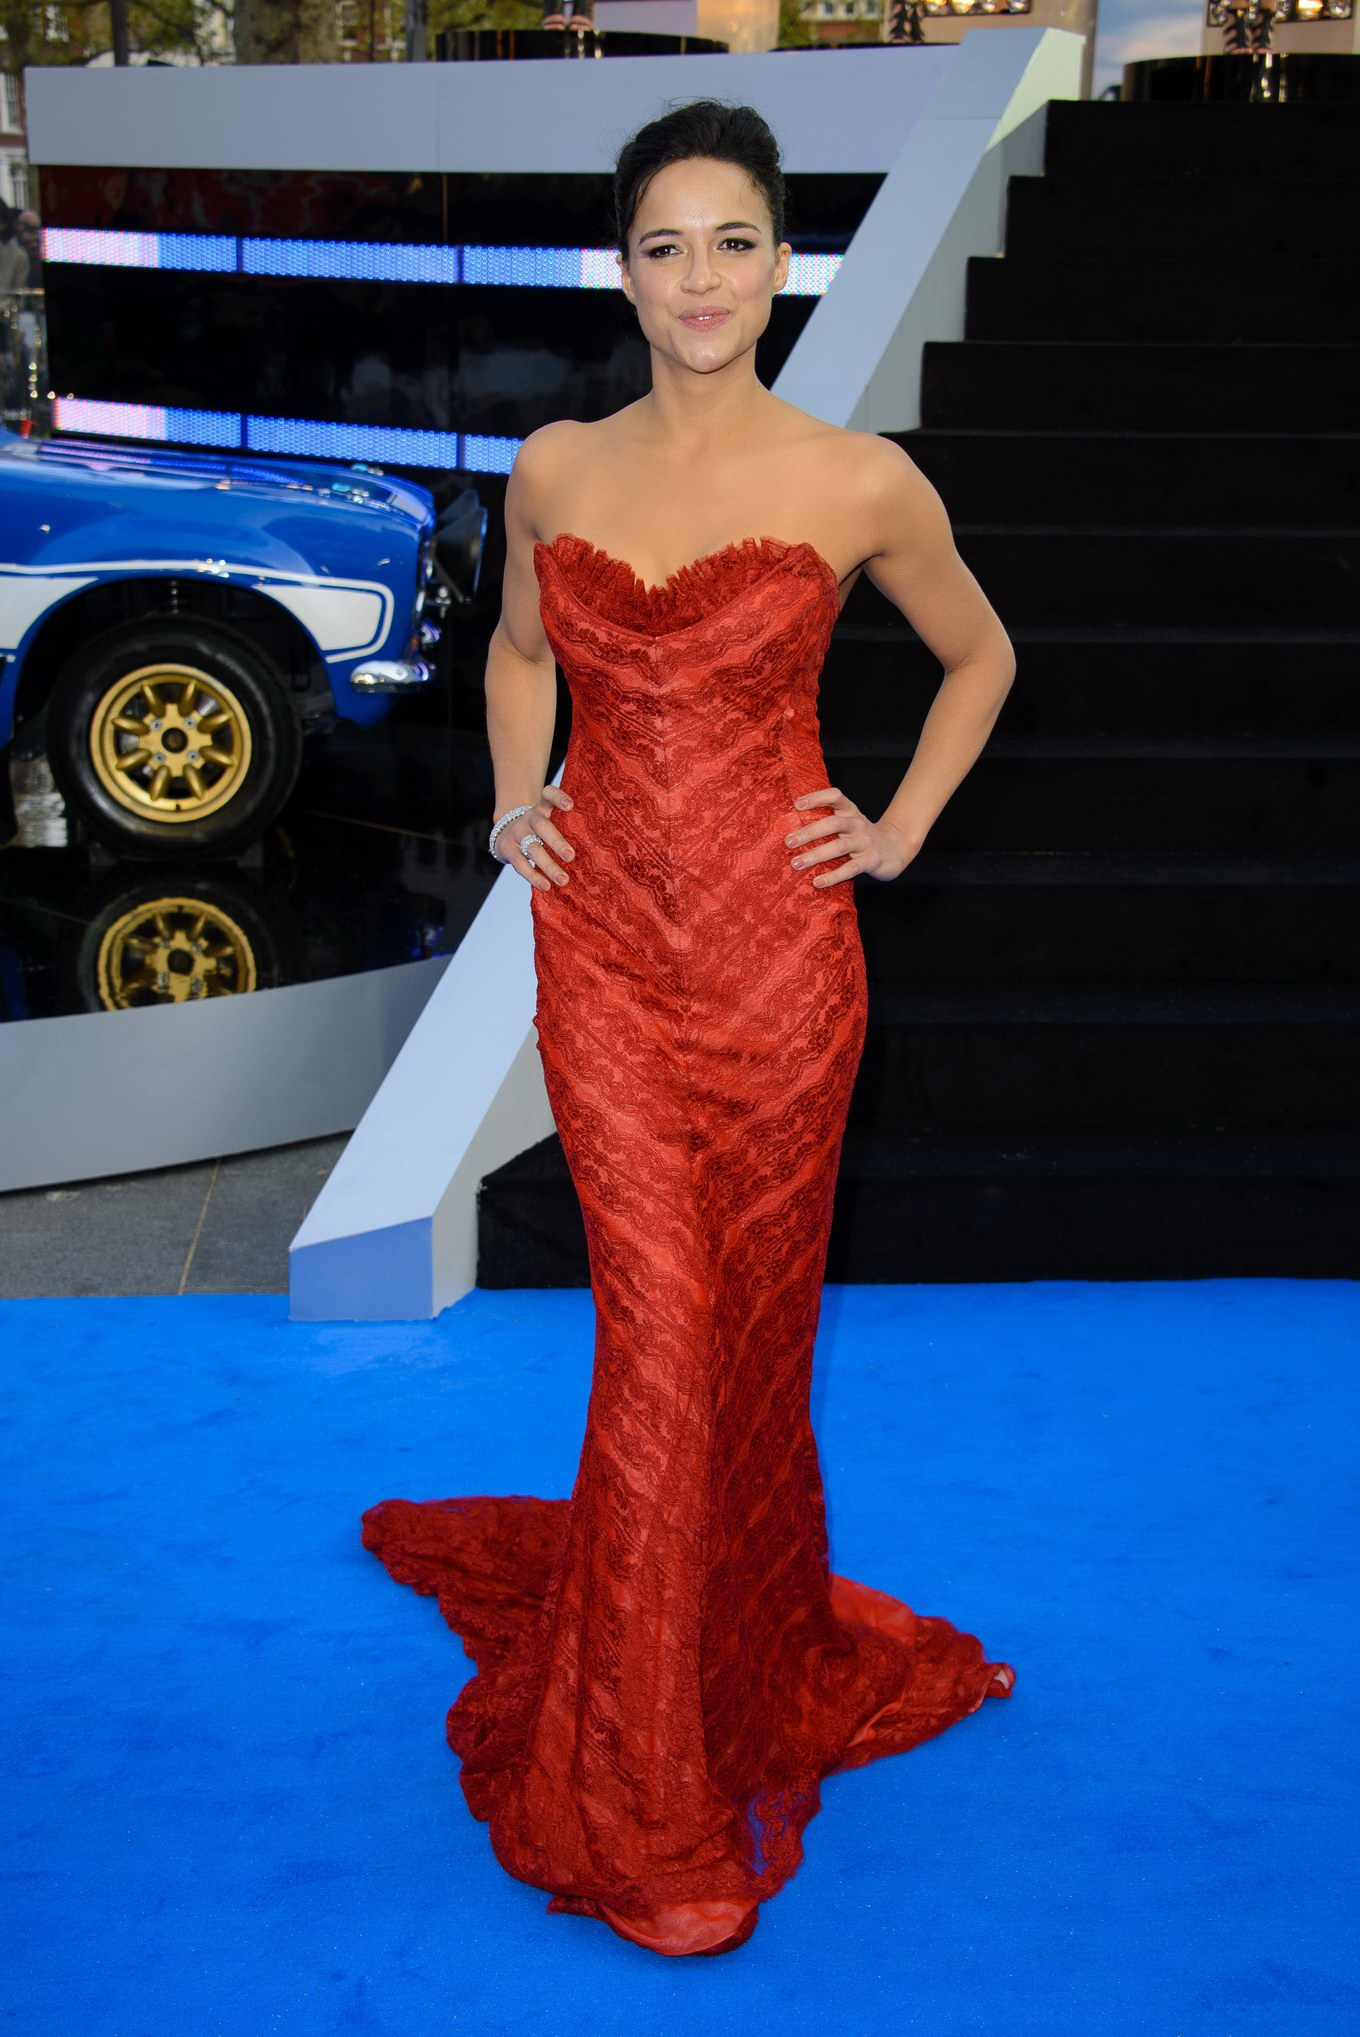 Michelle Rodriguez Busty Wearing Red Hot Strapless Mai Dress At The